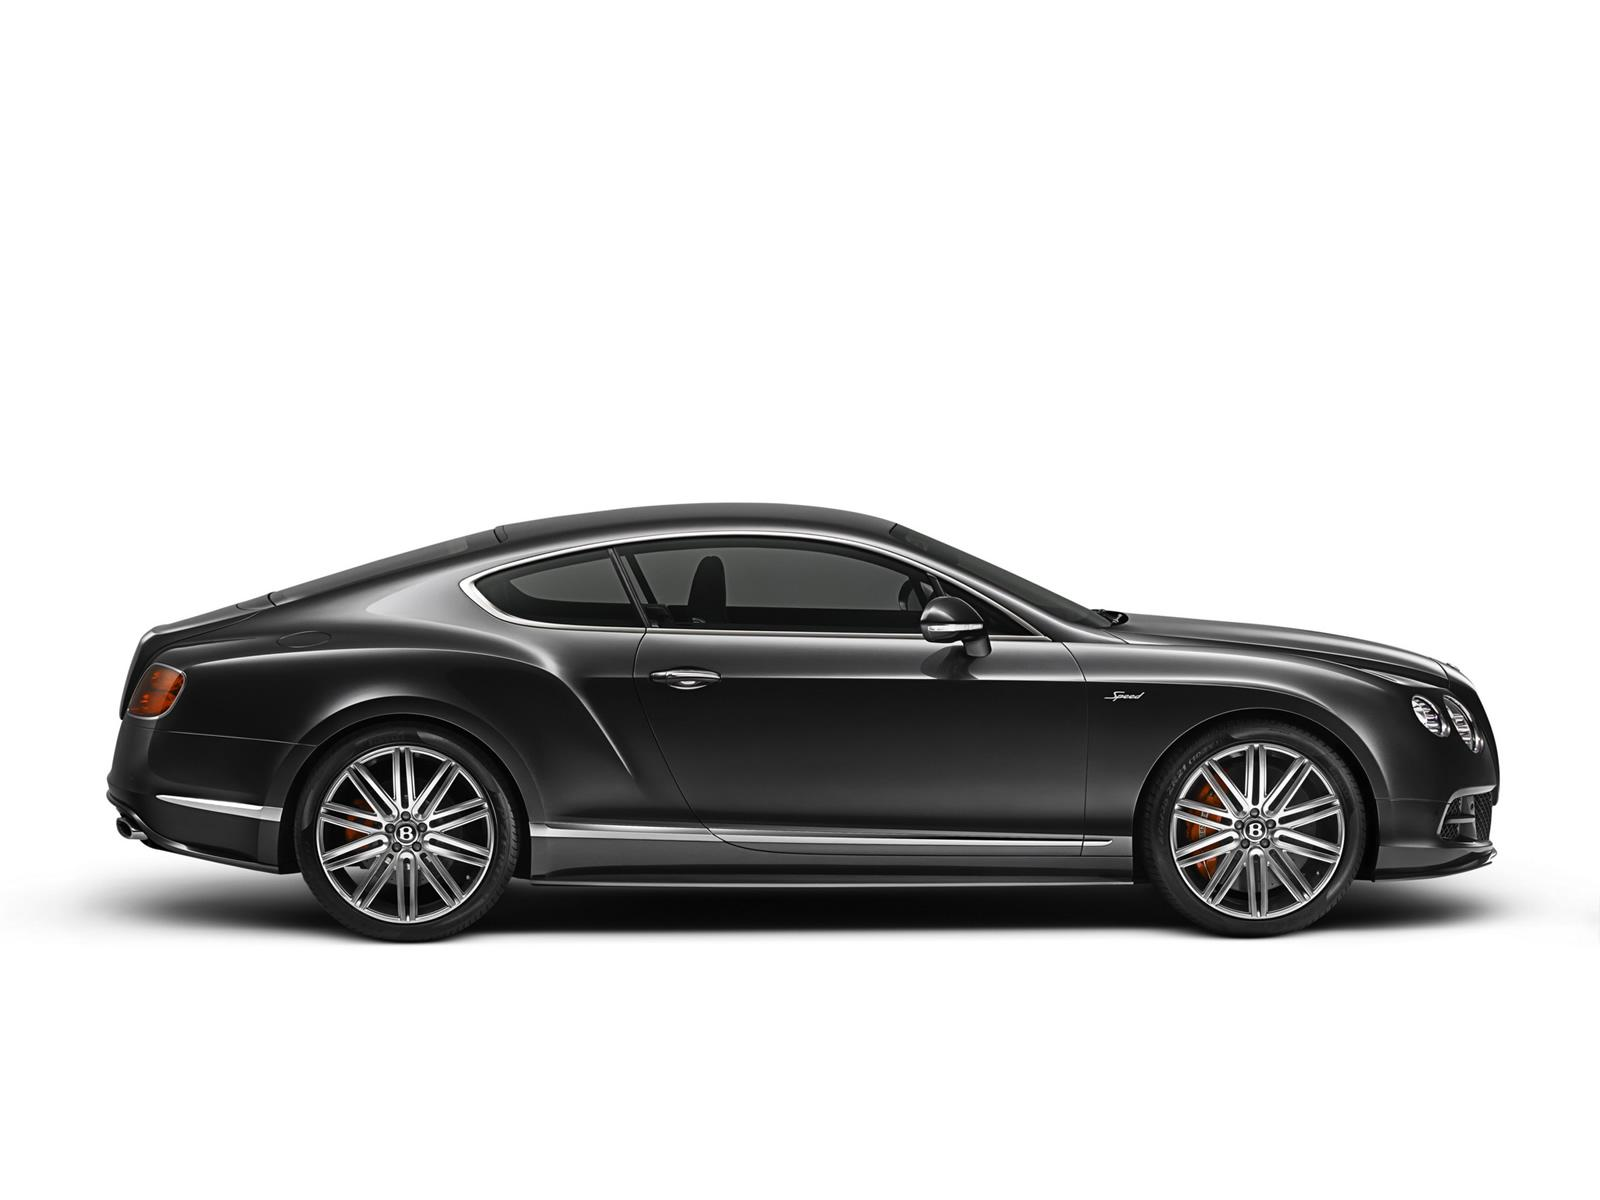 2014 bentley continental gt speed introduced with even more power. Cars Review. Best American Auto & Cars Review